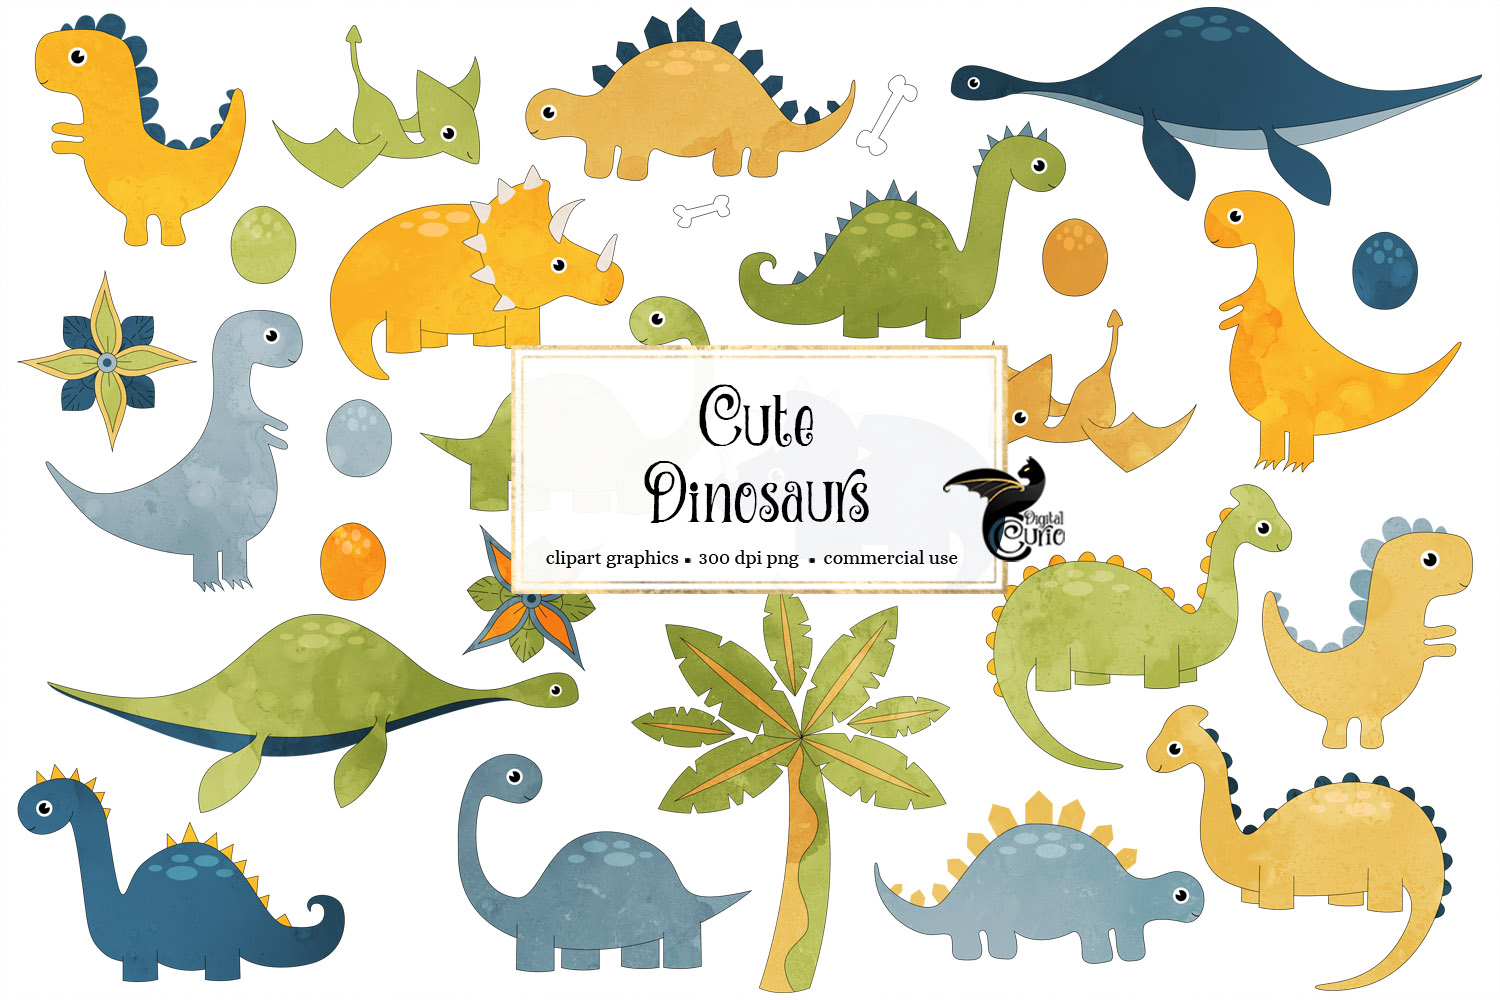 Download Free Cute Dinosaur Clipart Graphic By Digital Curio Creative Fabrica for Cricut Explore, Silhouette and other cutting machines.